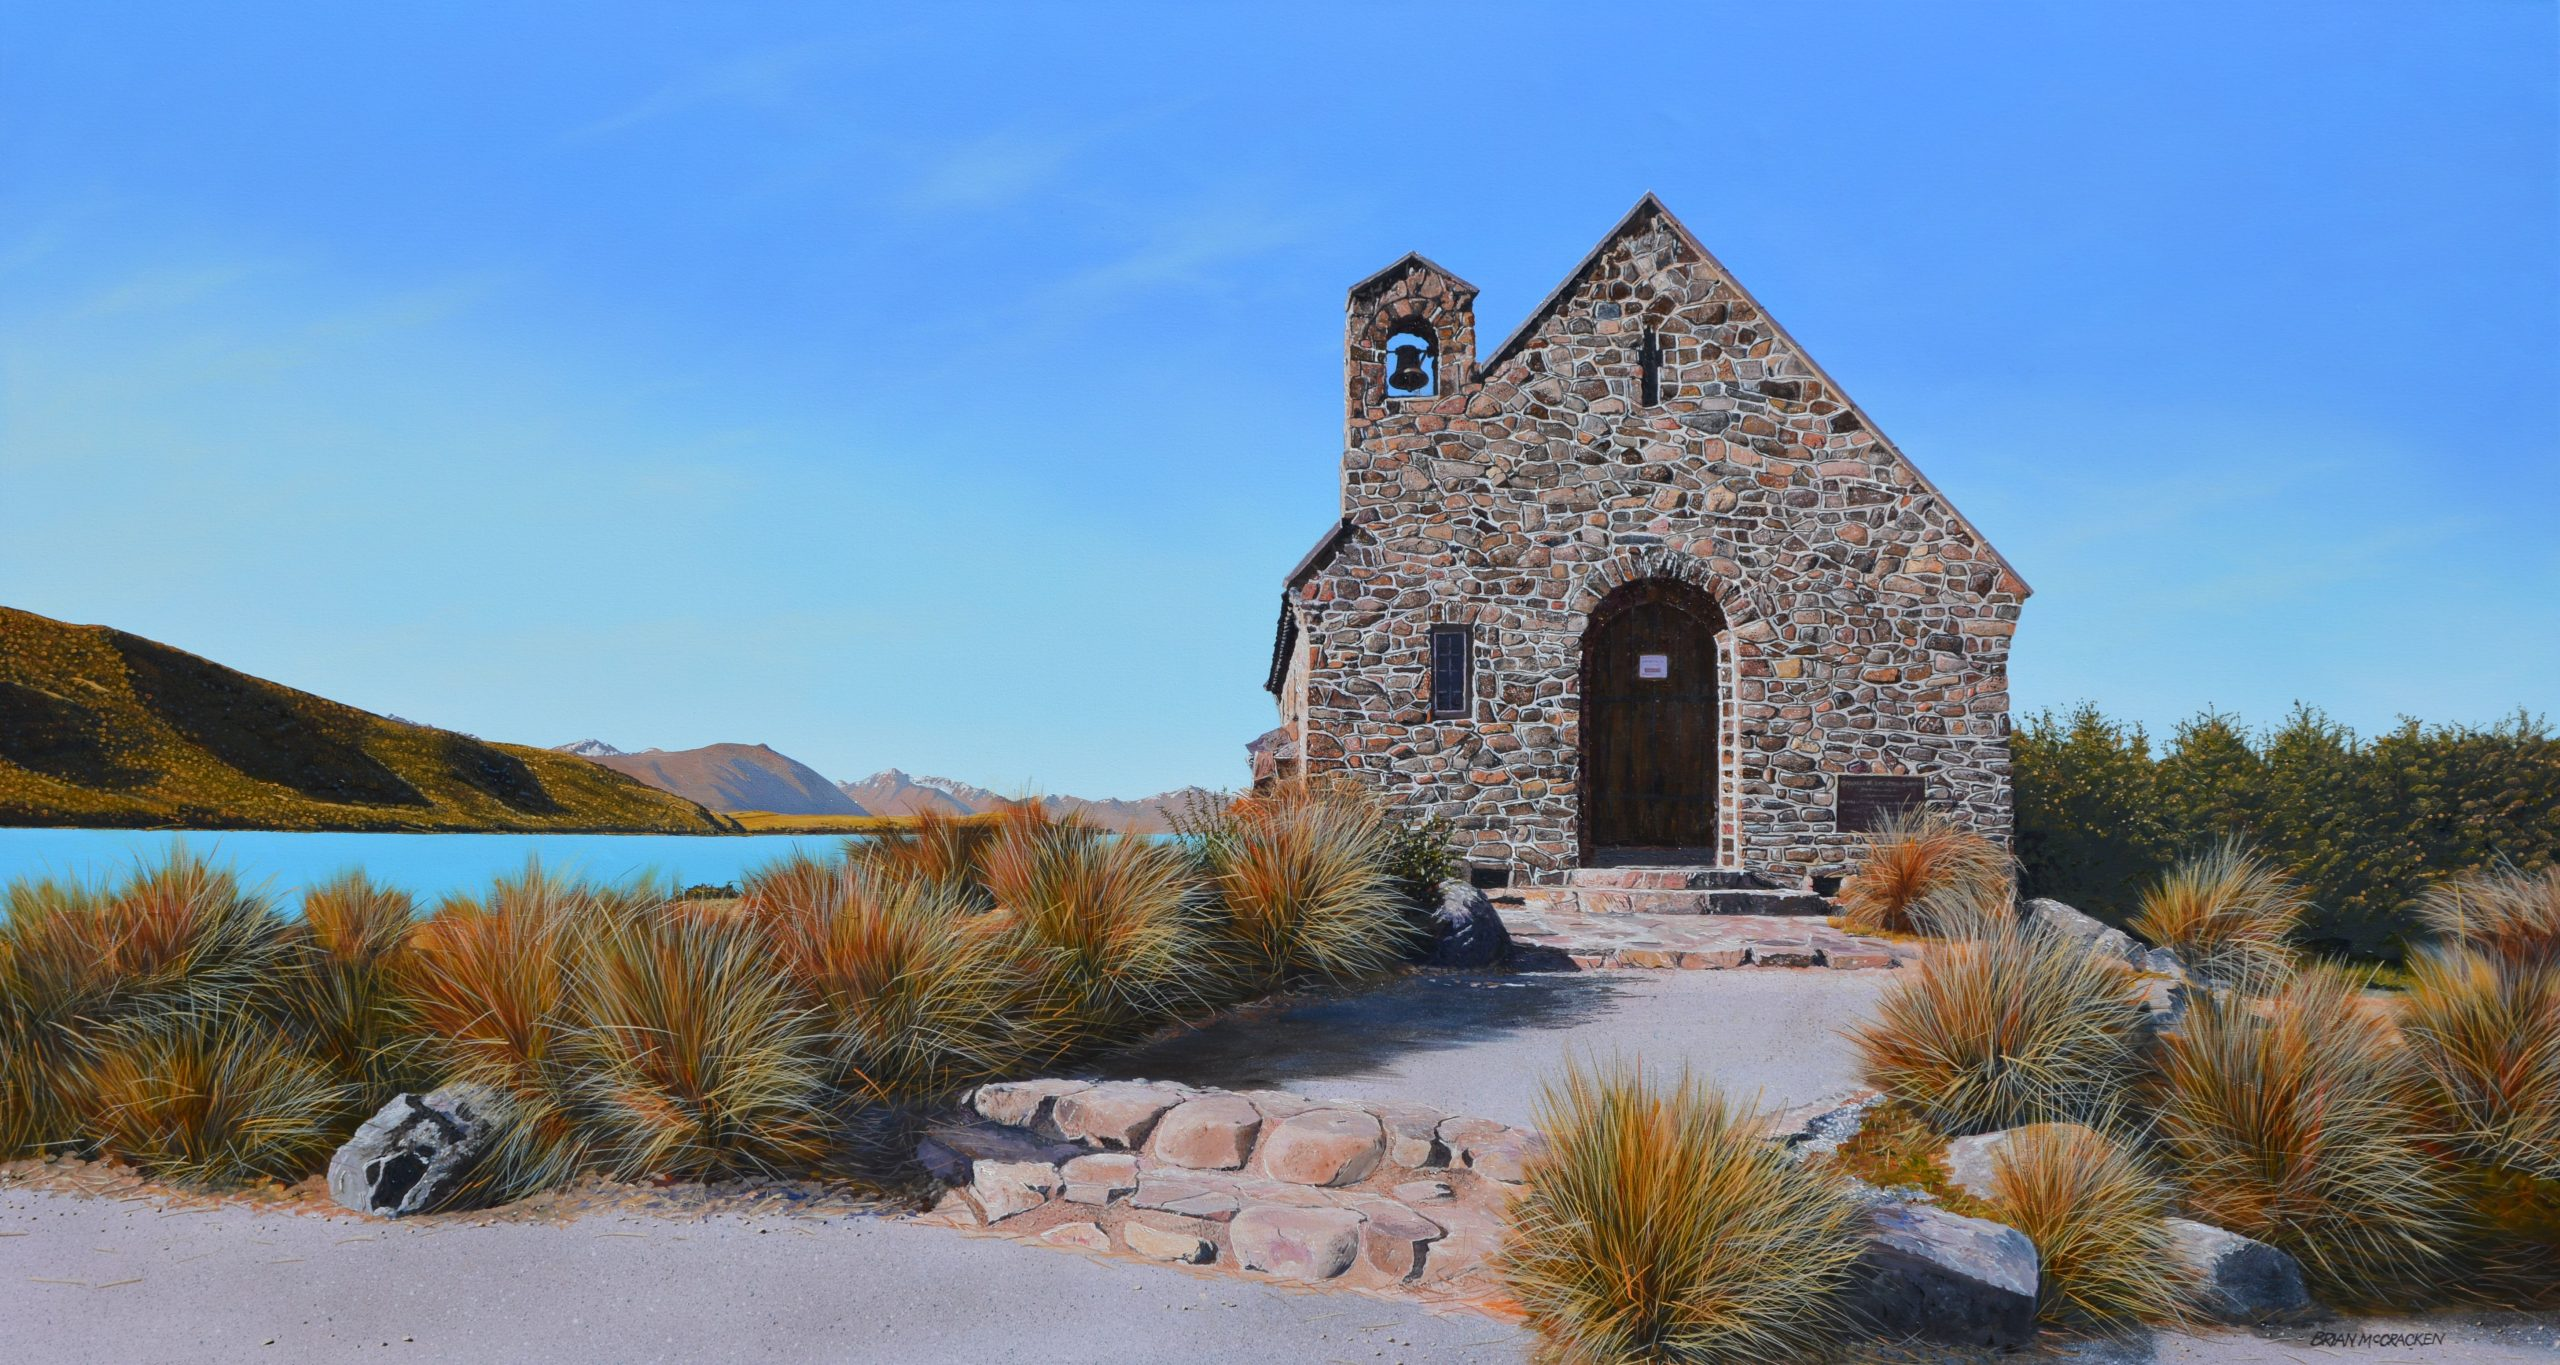 'Evensong' Church of the Good Shepherd, Lake Tekapo